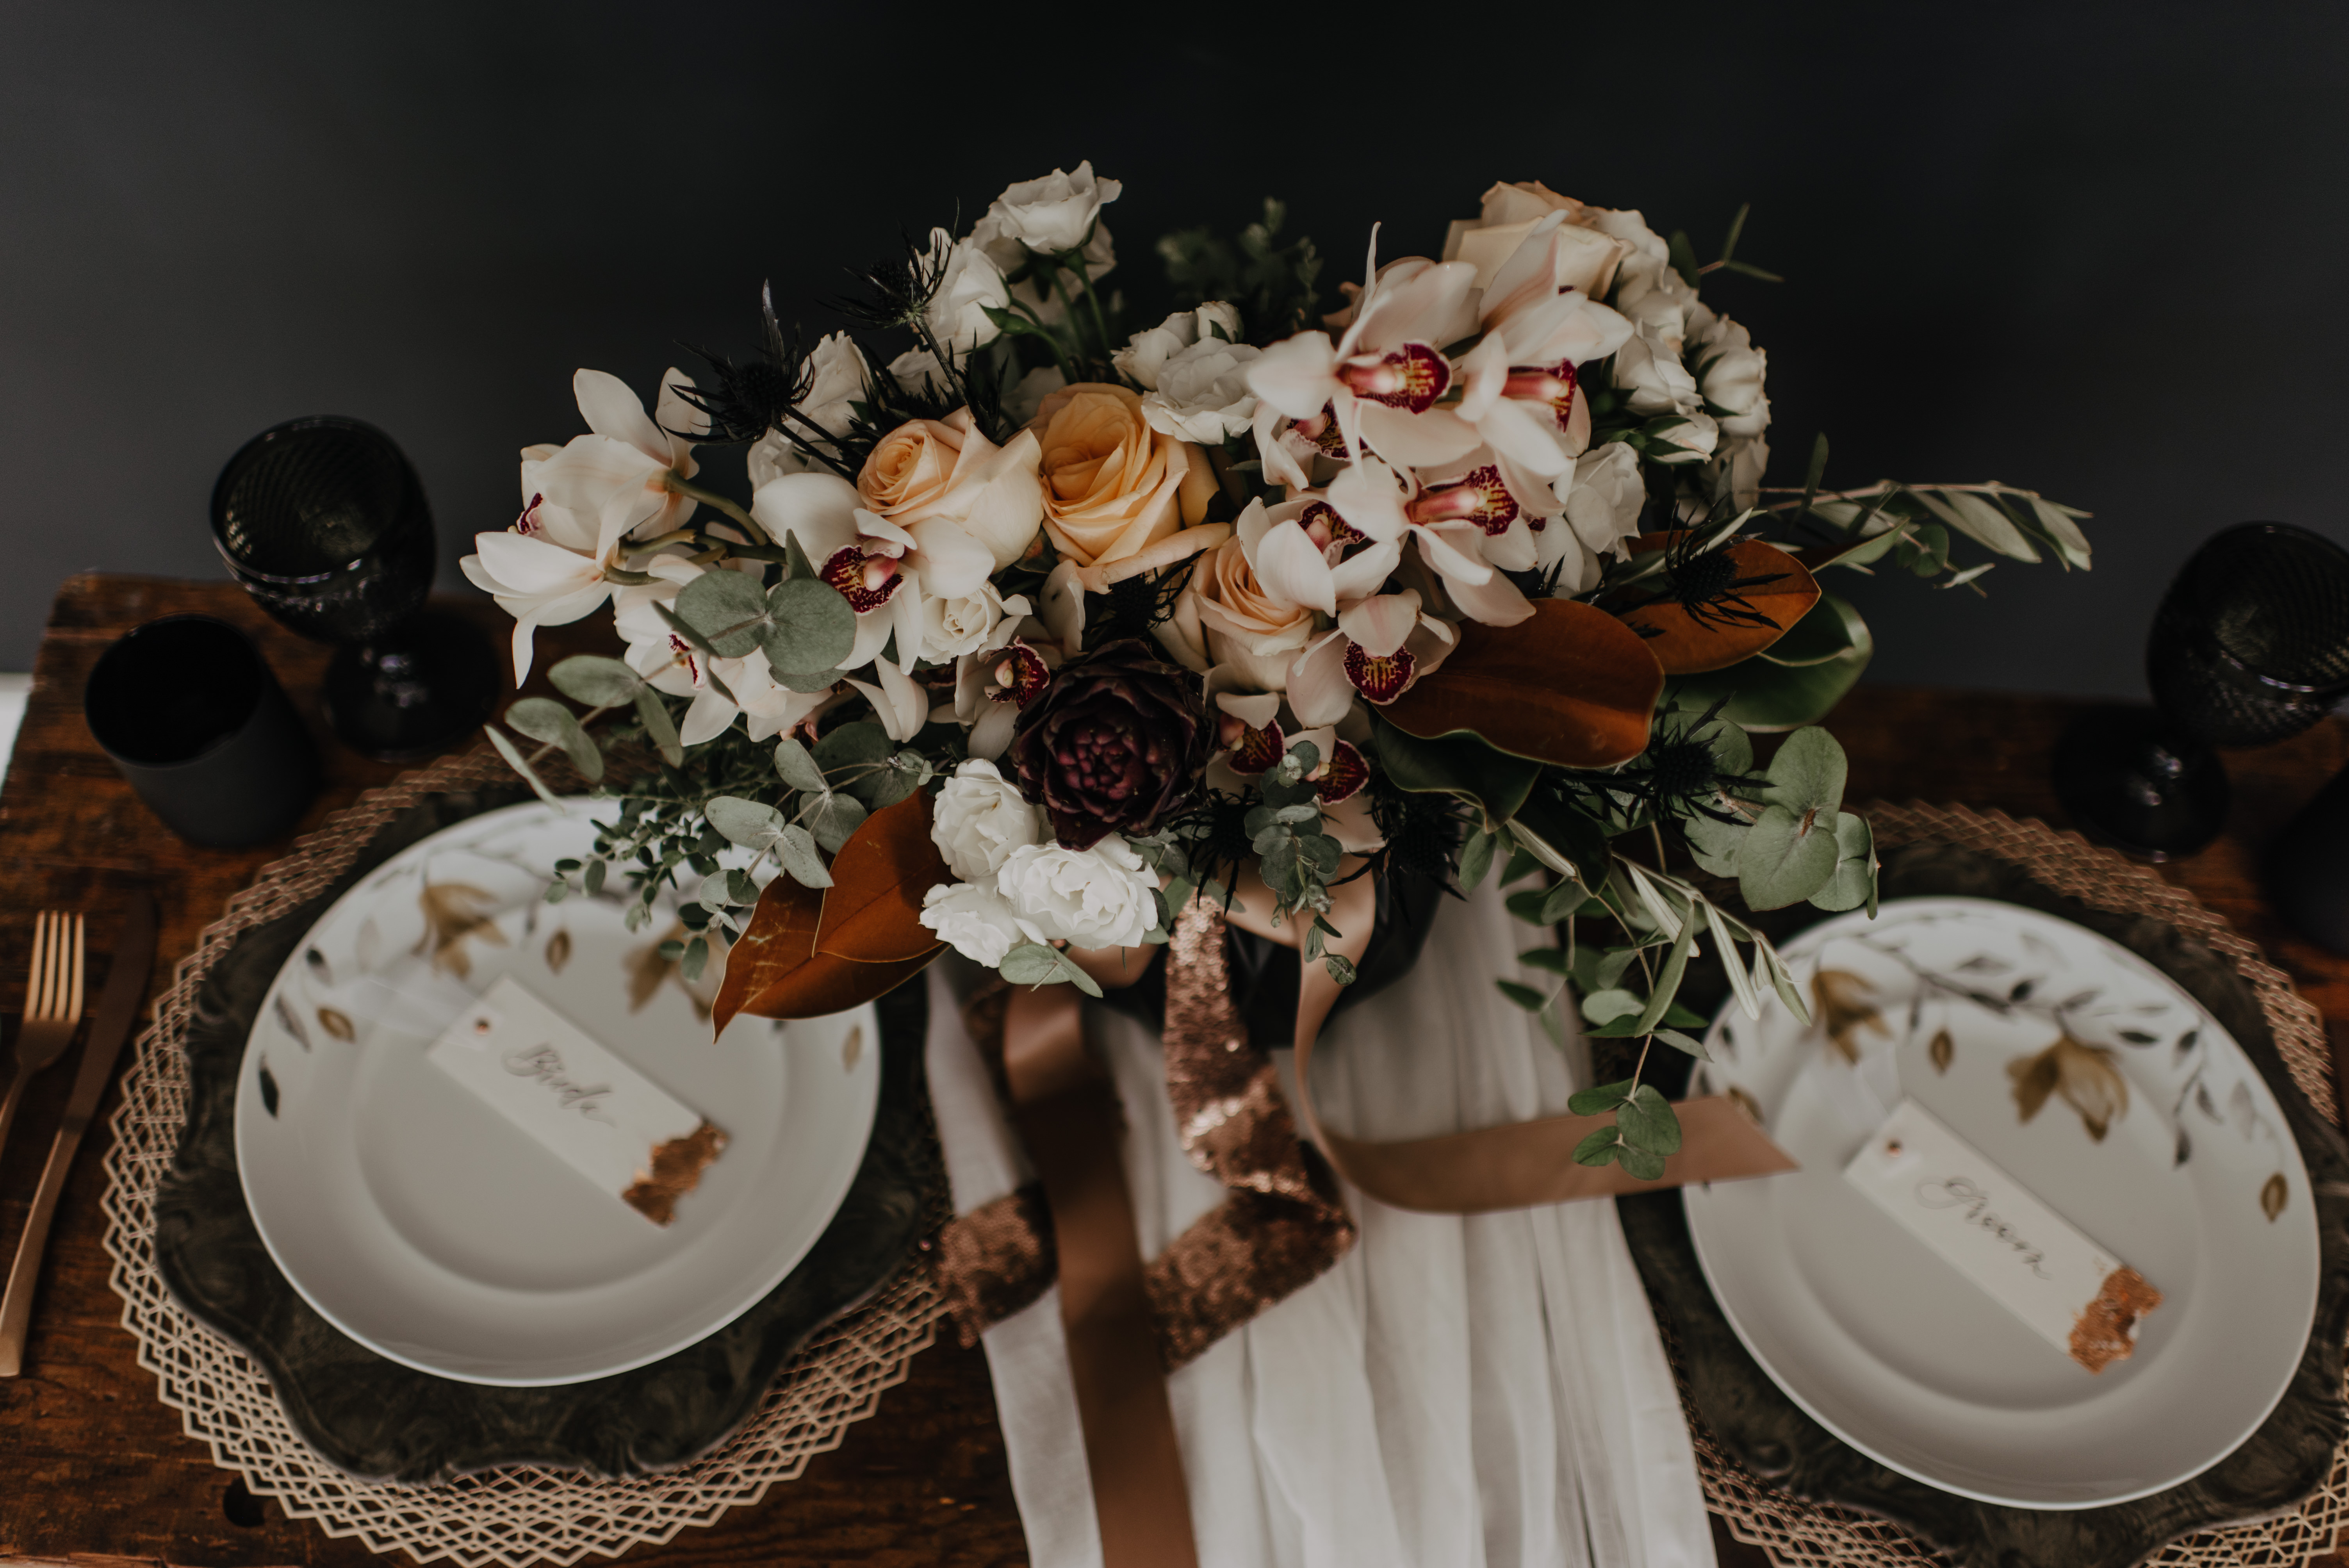 Neutrals Styled Shoot with Down the Aisle - Neutral coloured bridal bouquet with peach roses, orchids, magnolia leaves and eucalyptus greenery tied with trailing ribbon atop a decorated sweetheart table.